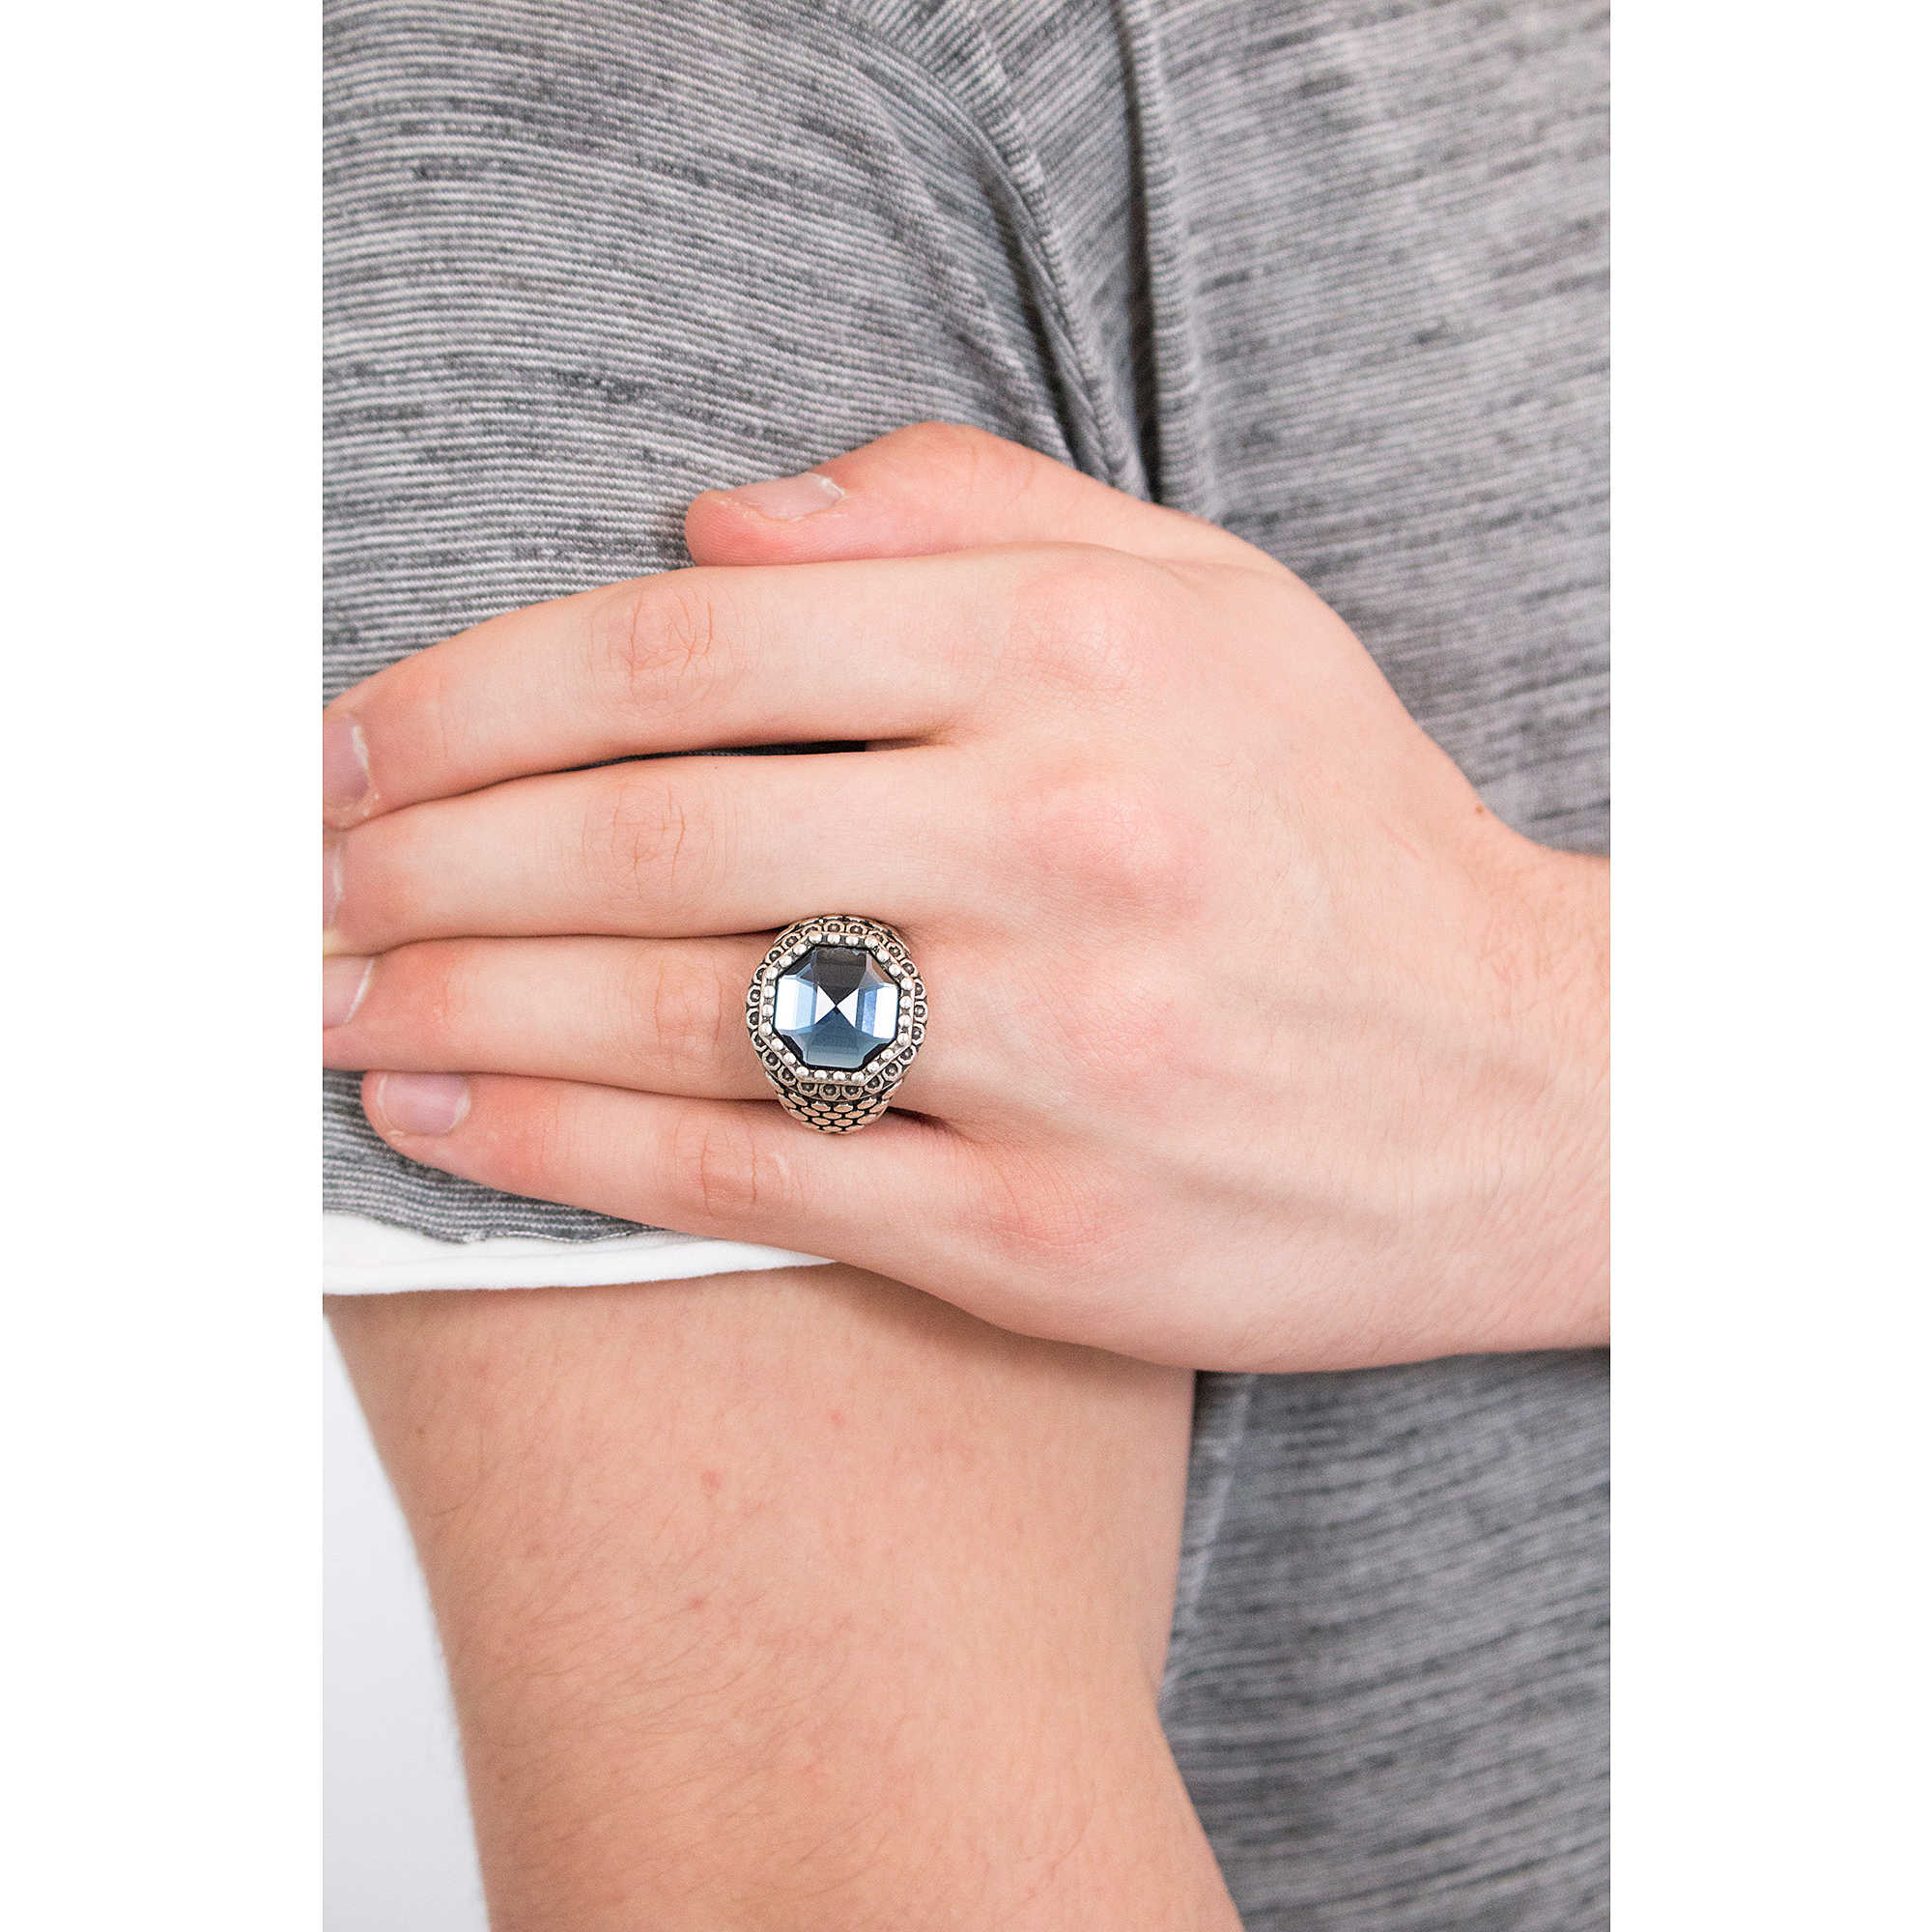 taille 10 bague homme